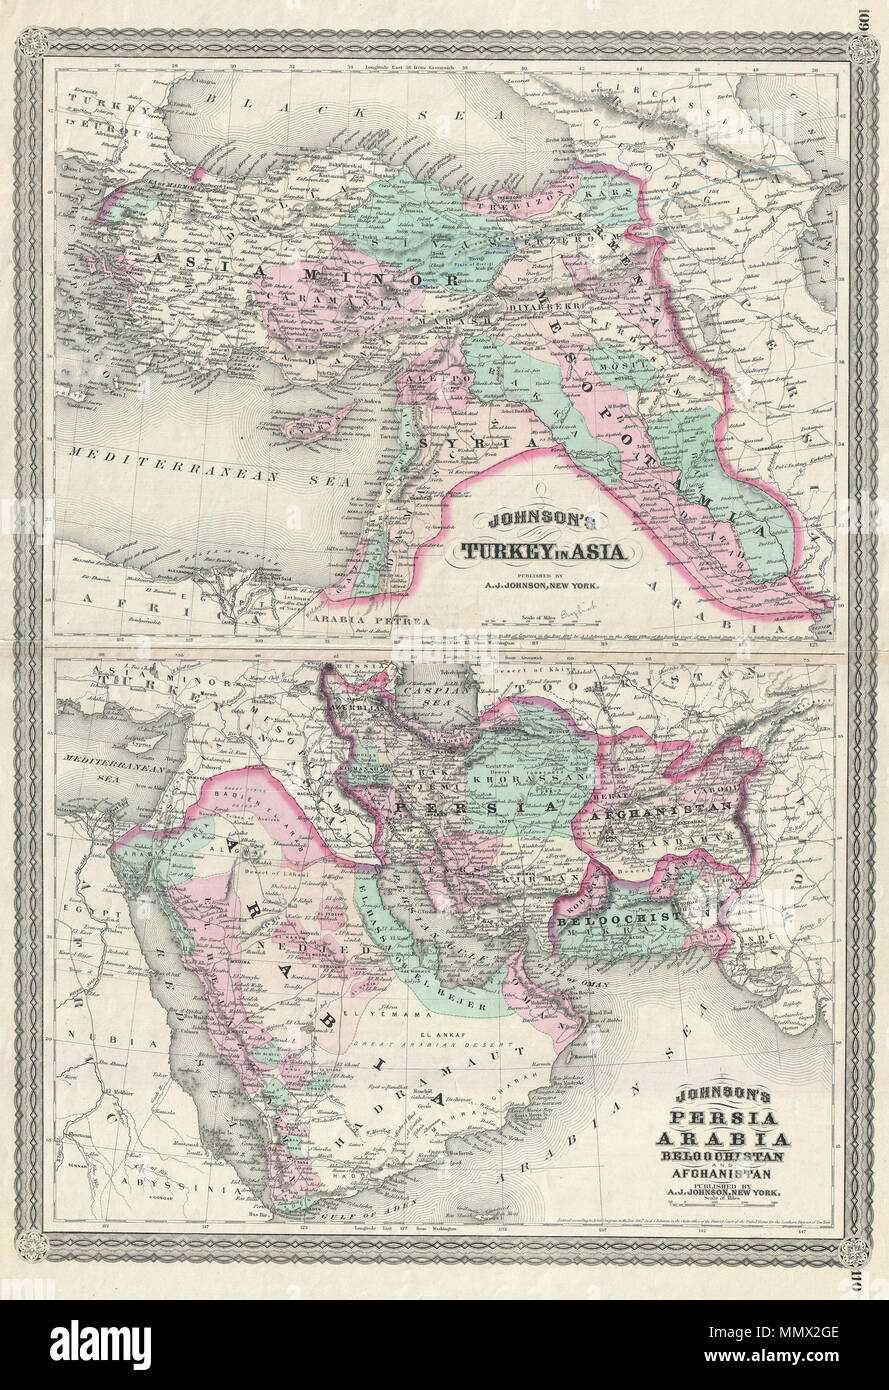 English: This is A. J. Johnson 1870 map of what is today considered on